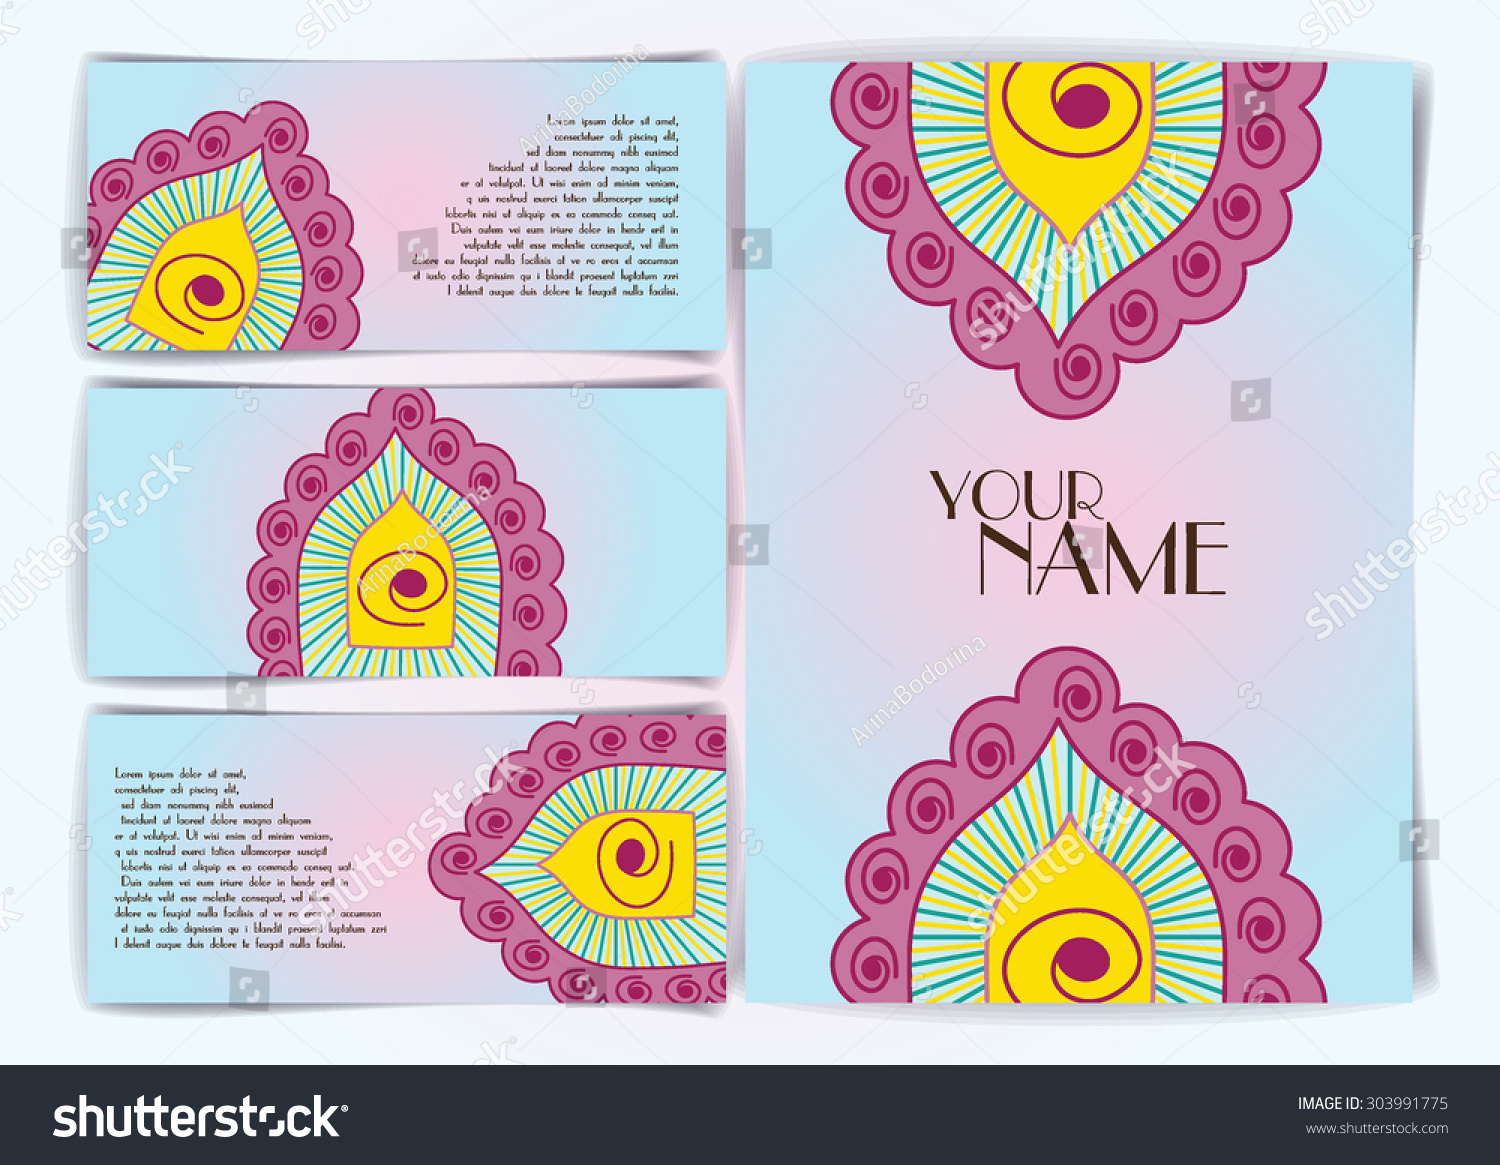 Business Card Vintage Decorative Elements Hand Stock Vector ...